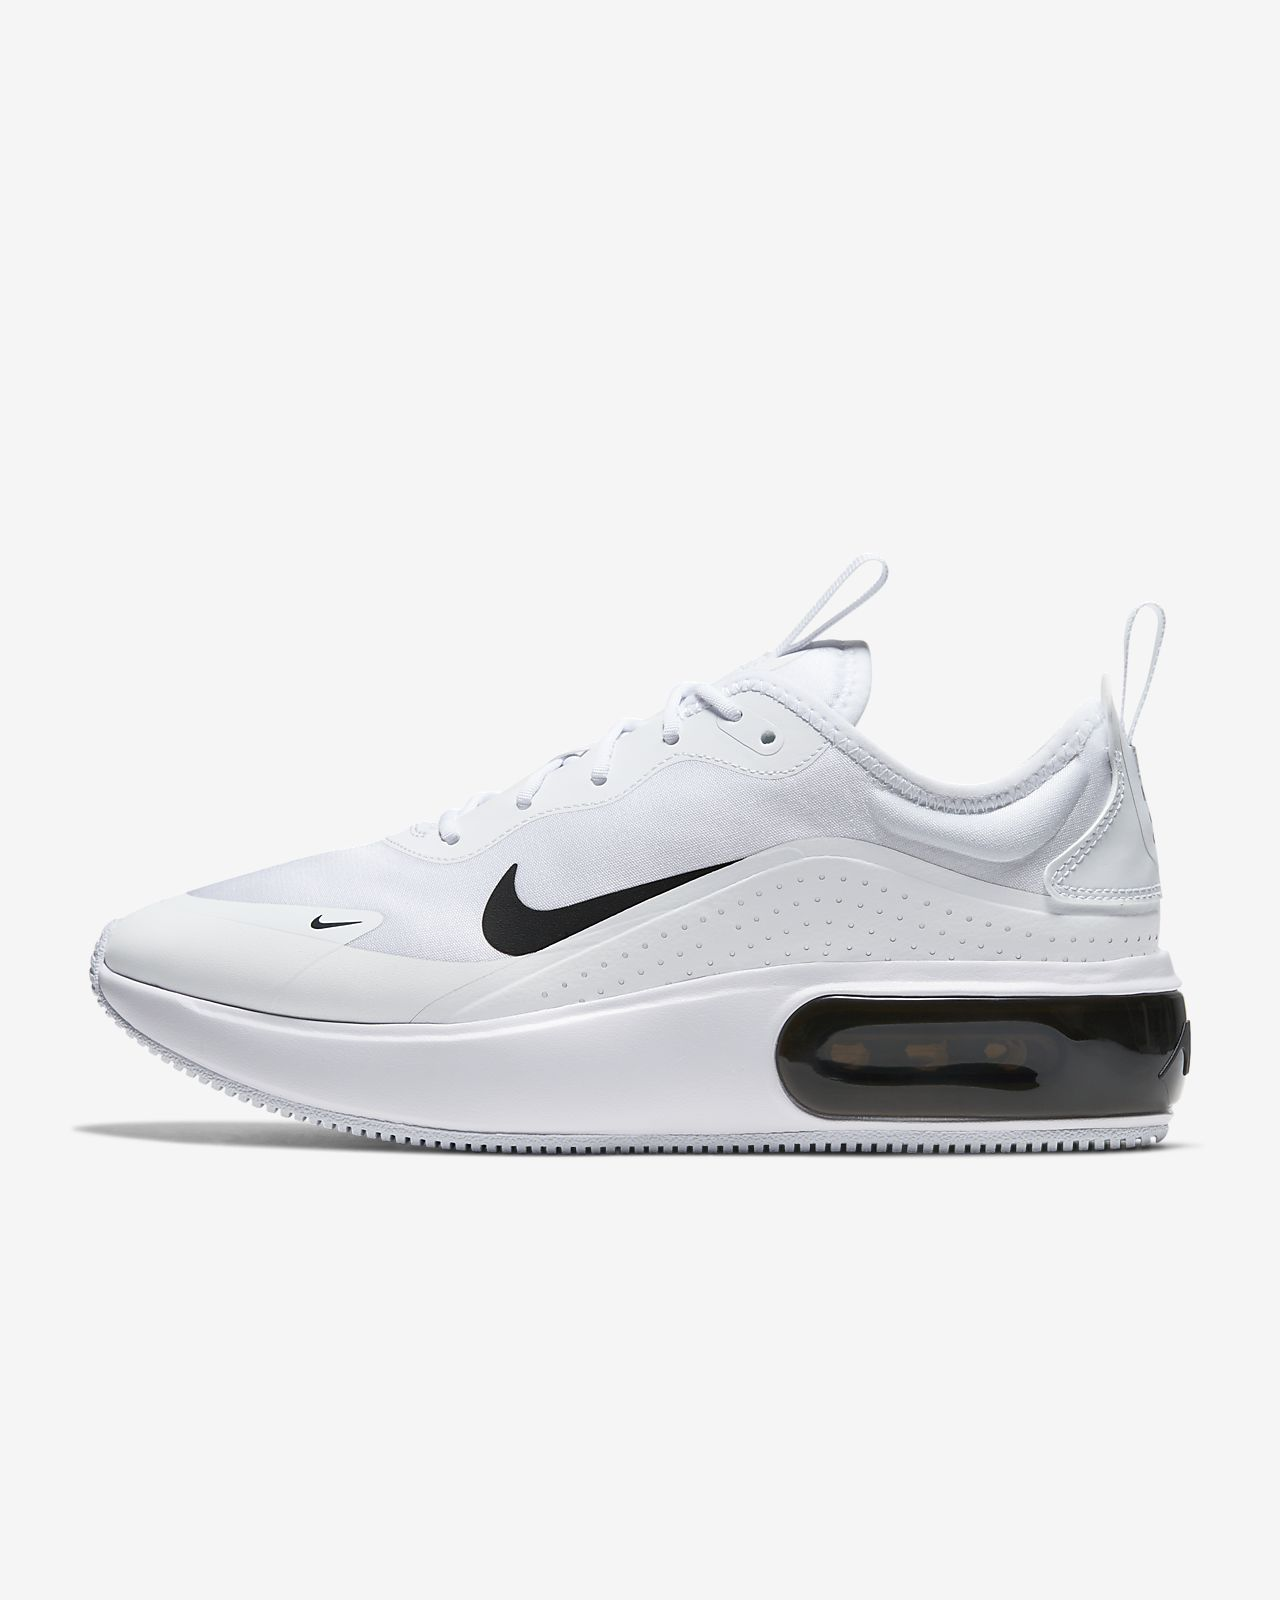 Women's Nike Air Max 270 Casual Shoes | Nike shoes women